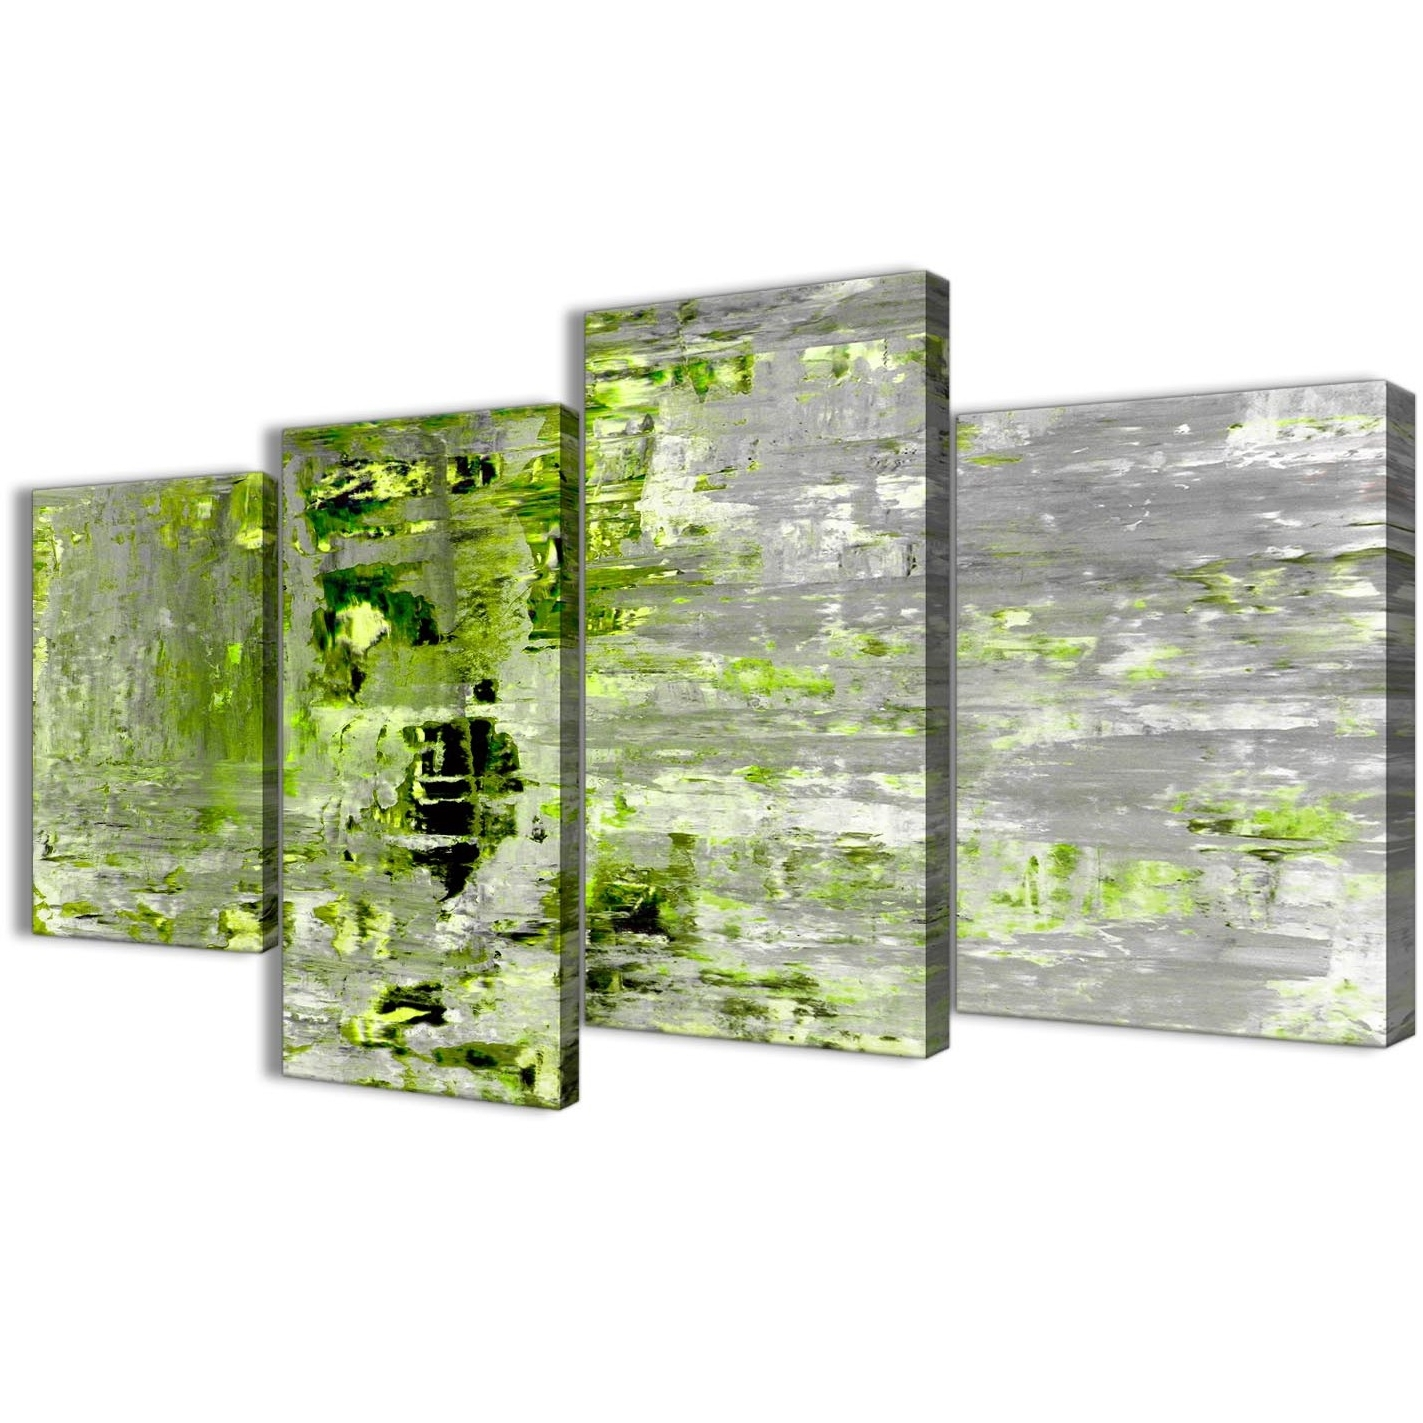 2017 Lime Green Canvas Wall Art Intended For Large Lime Green Grey Abstract Painting Wall Art Print Canvas (Gallery 12 of 15)